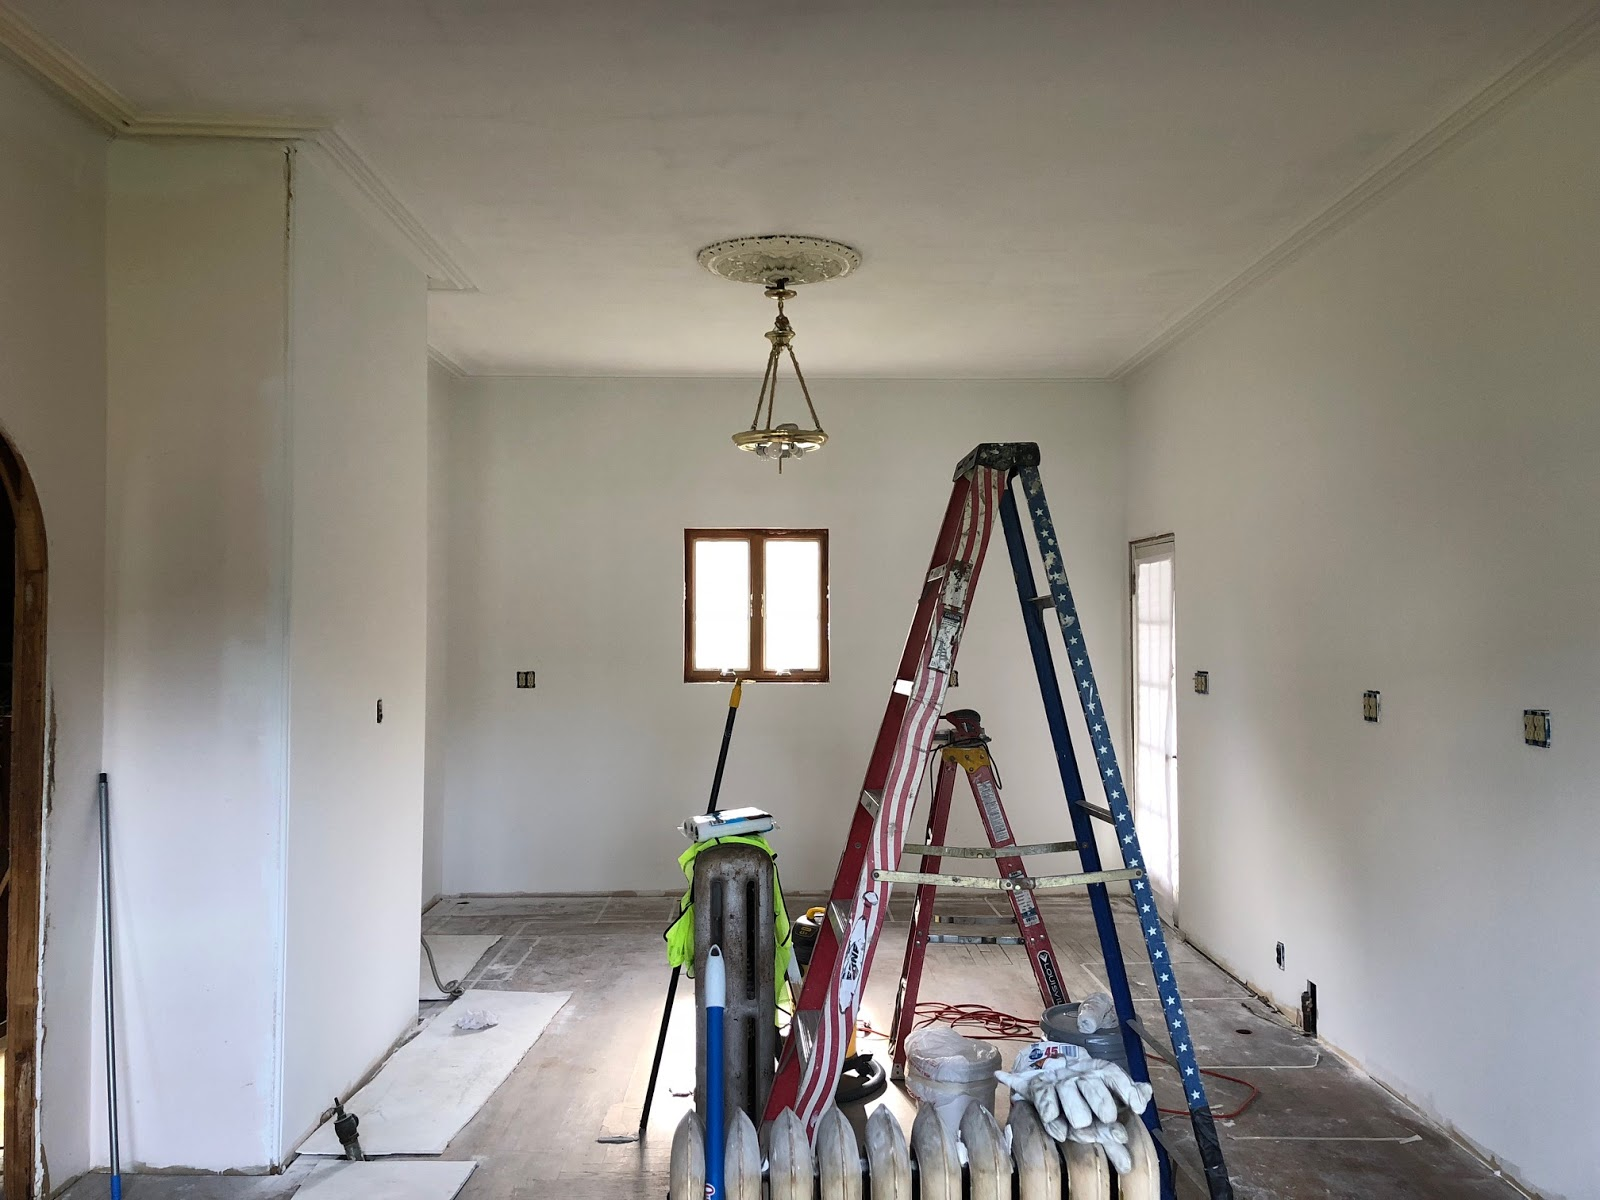 Its Current State, Walls And Ceiling Have Been Skim Coated